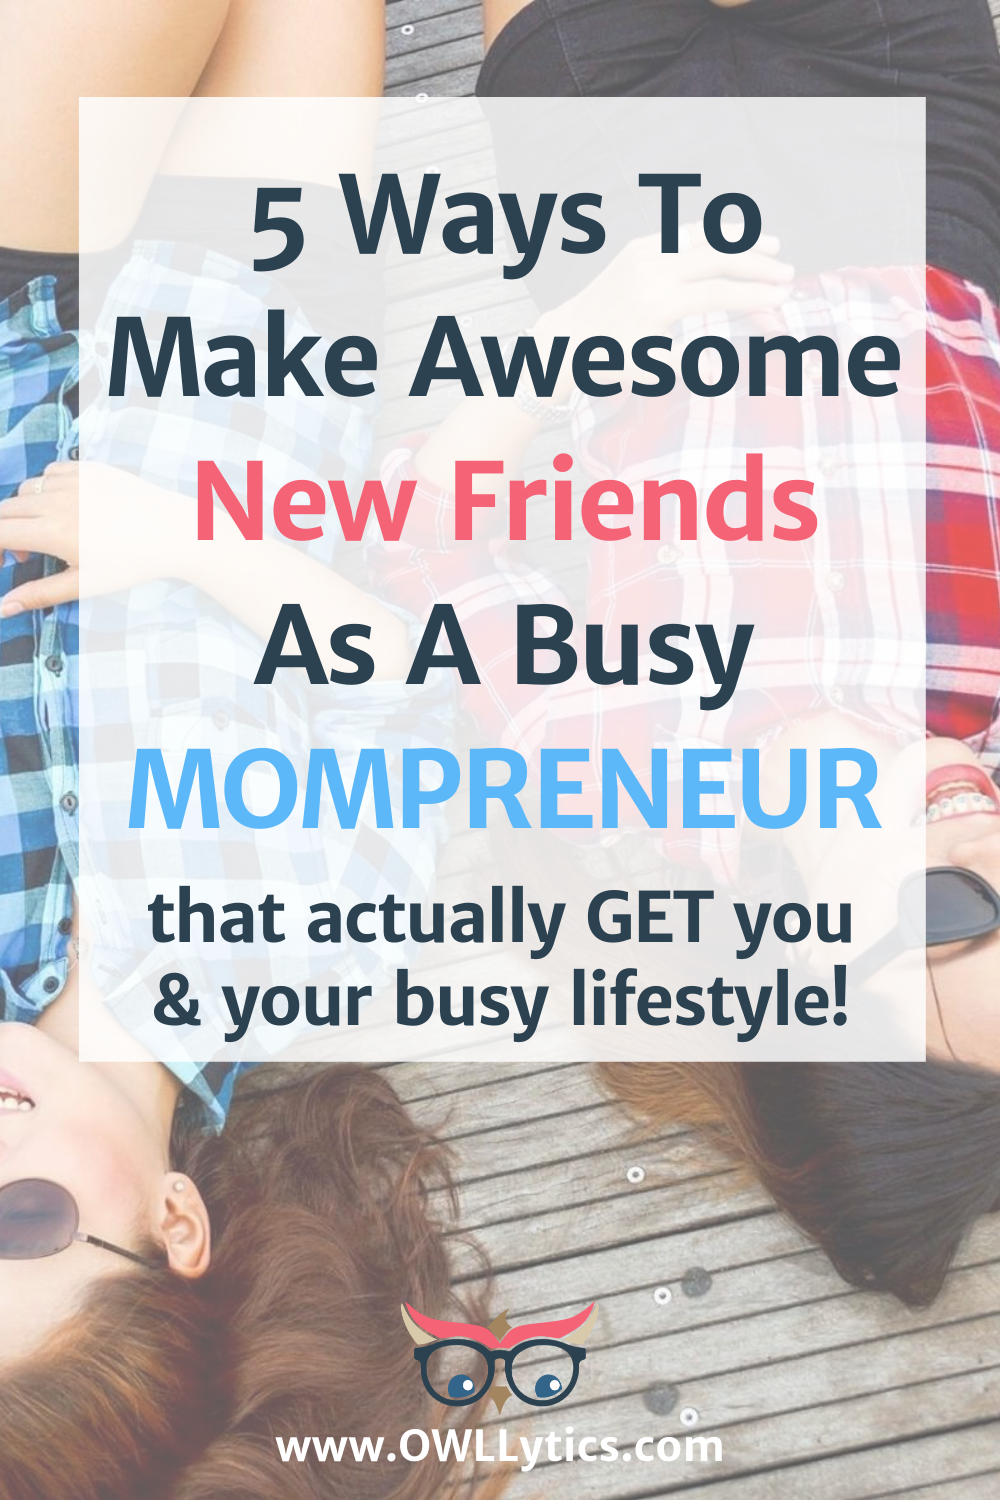 5 Ways To Make New Friends As A Busy Mompreneur | OWLLytics